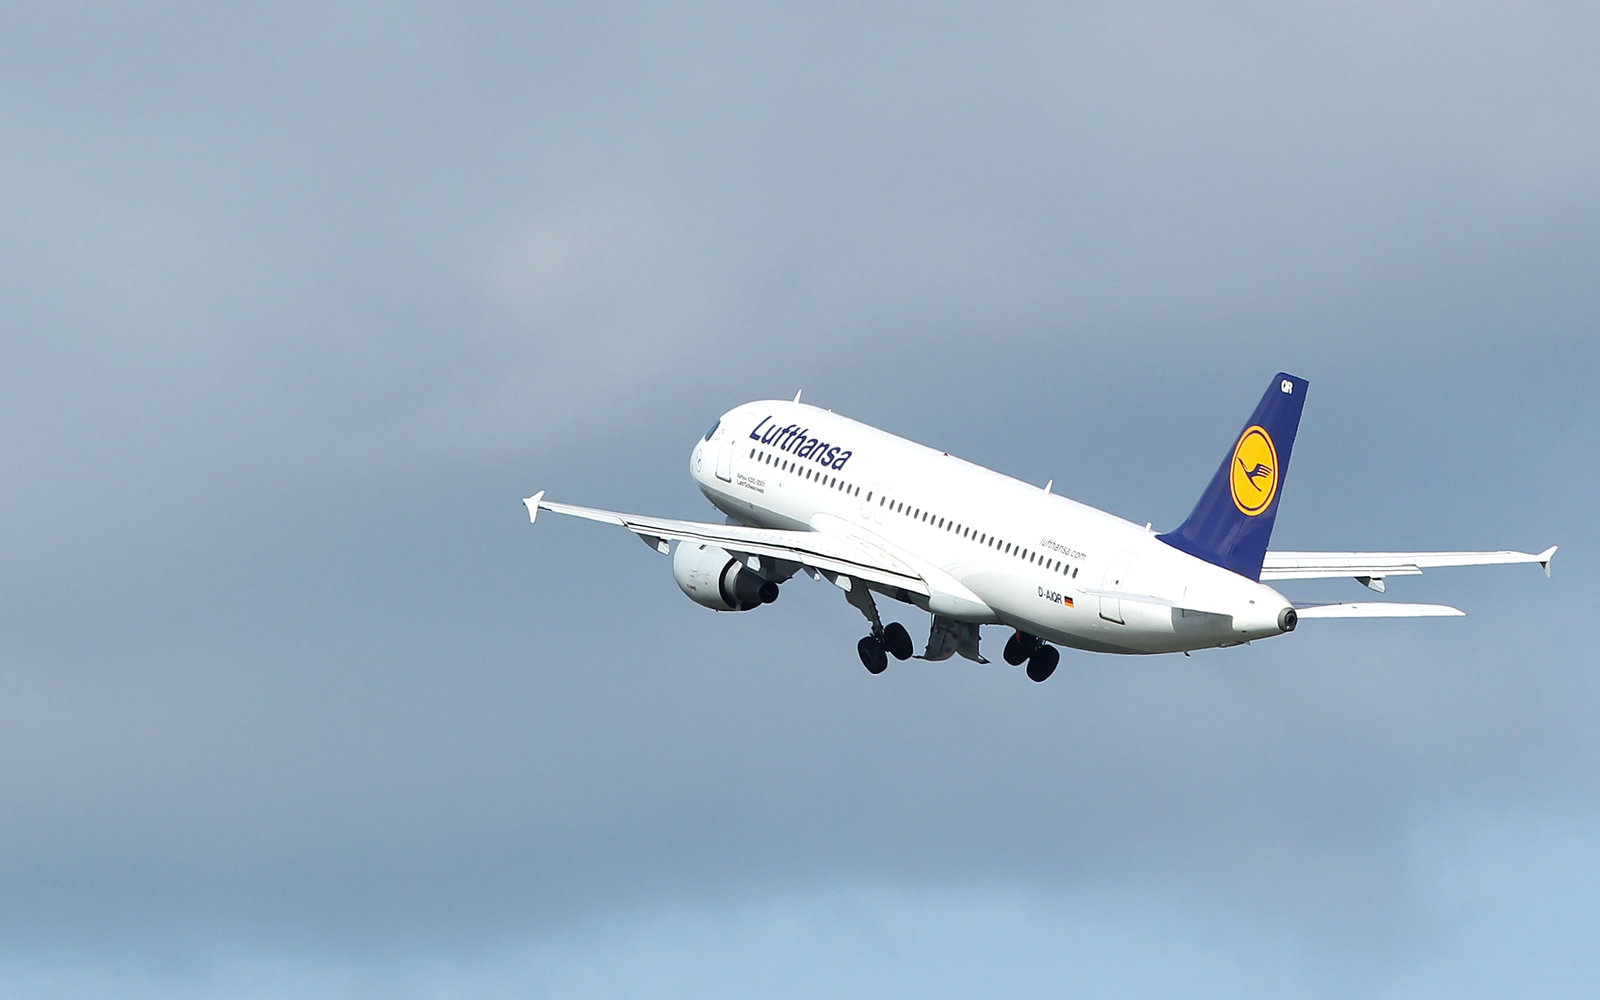 Lufthansa Just Became the First European Airline to Use TSA PreCheck